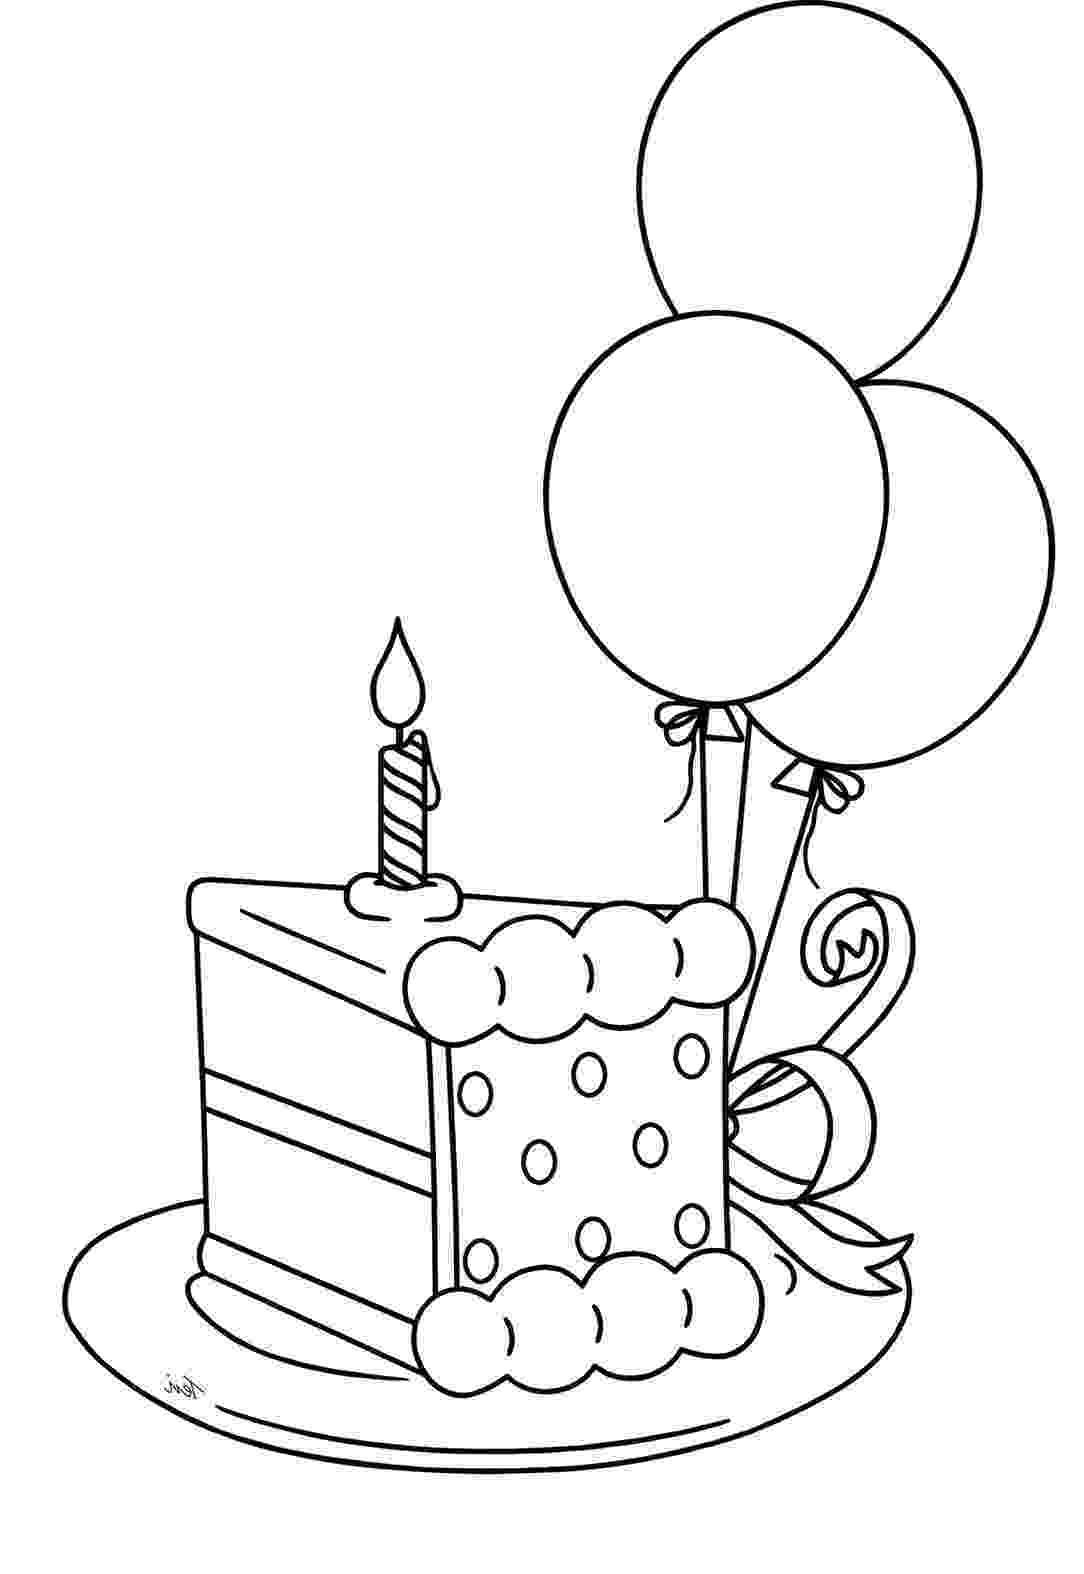 free colouring pages birthday cake birthday cake coloring pages getcoloringpagescom pages colouring free cake birthday